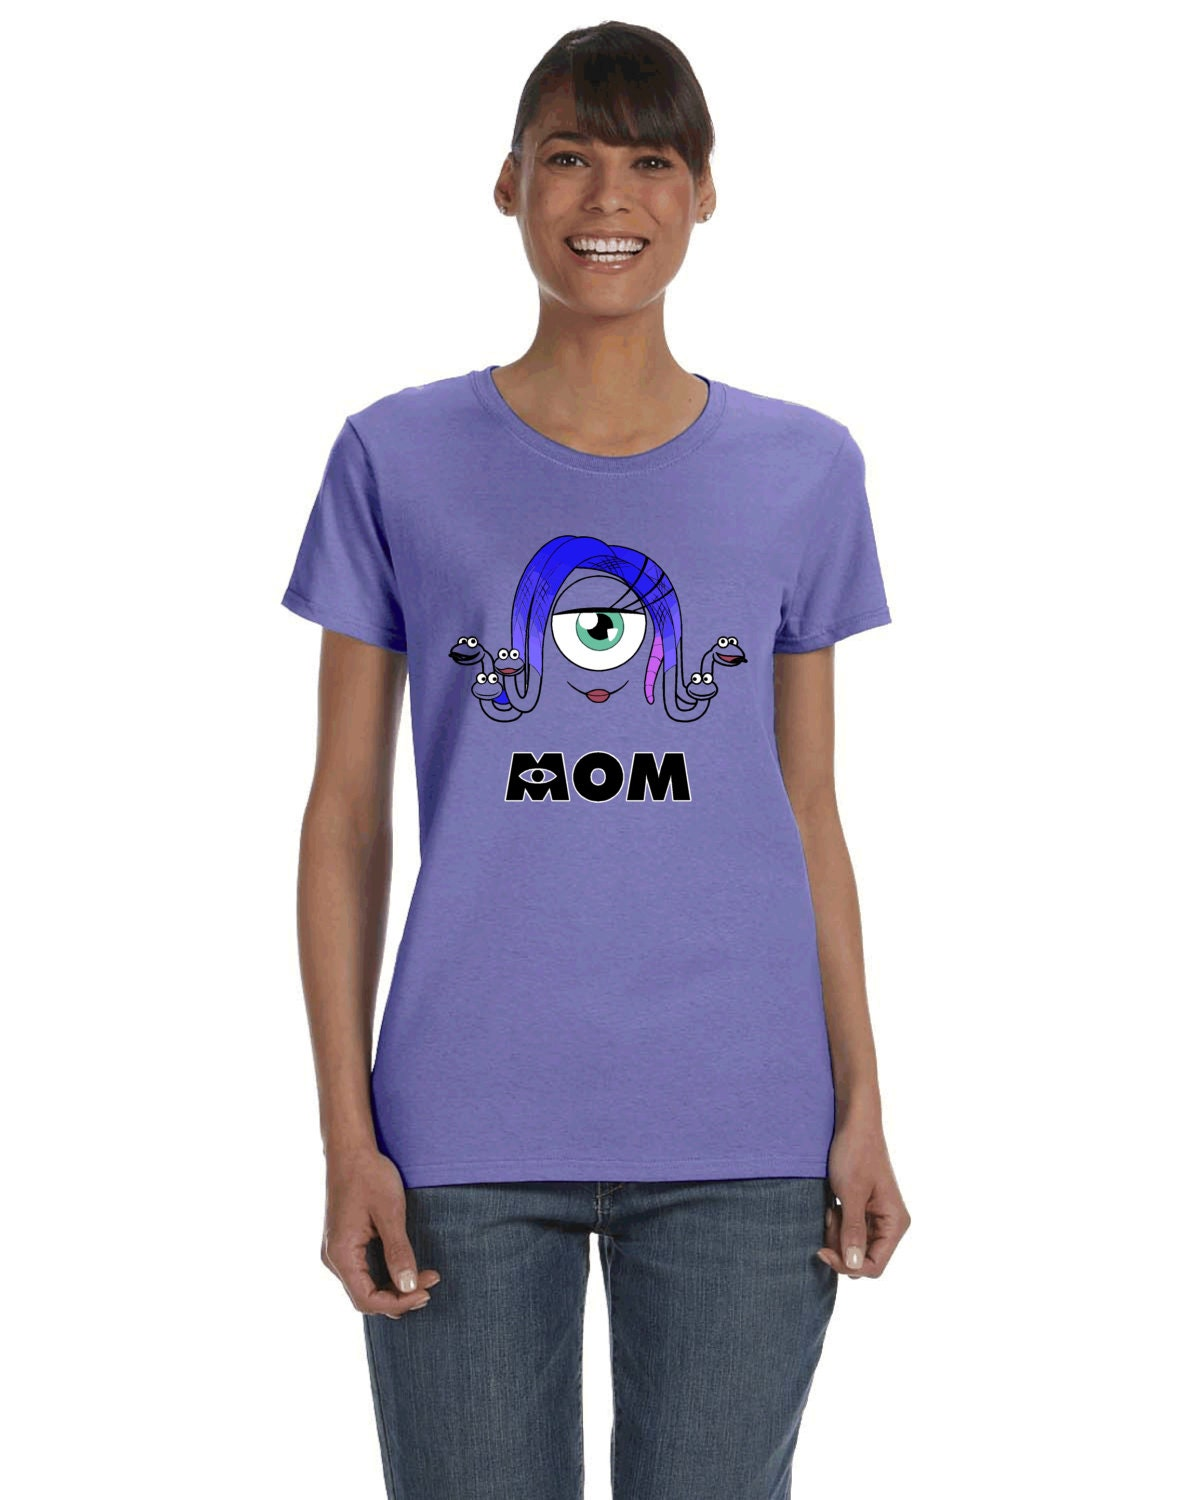 Design your own t-shirt disney world